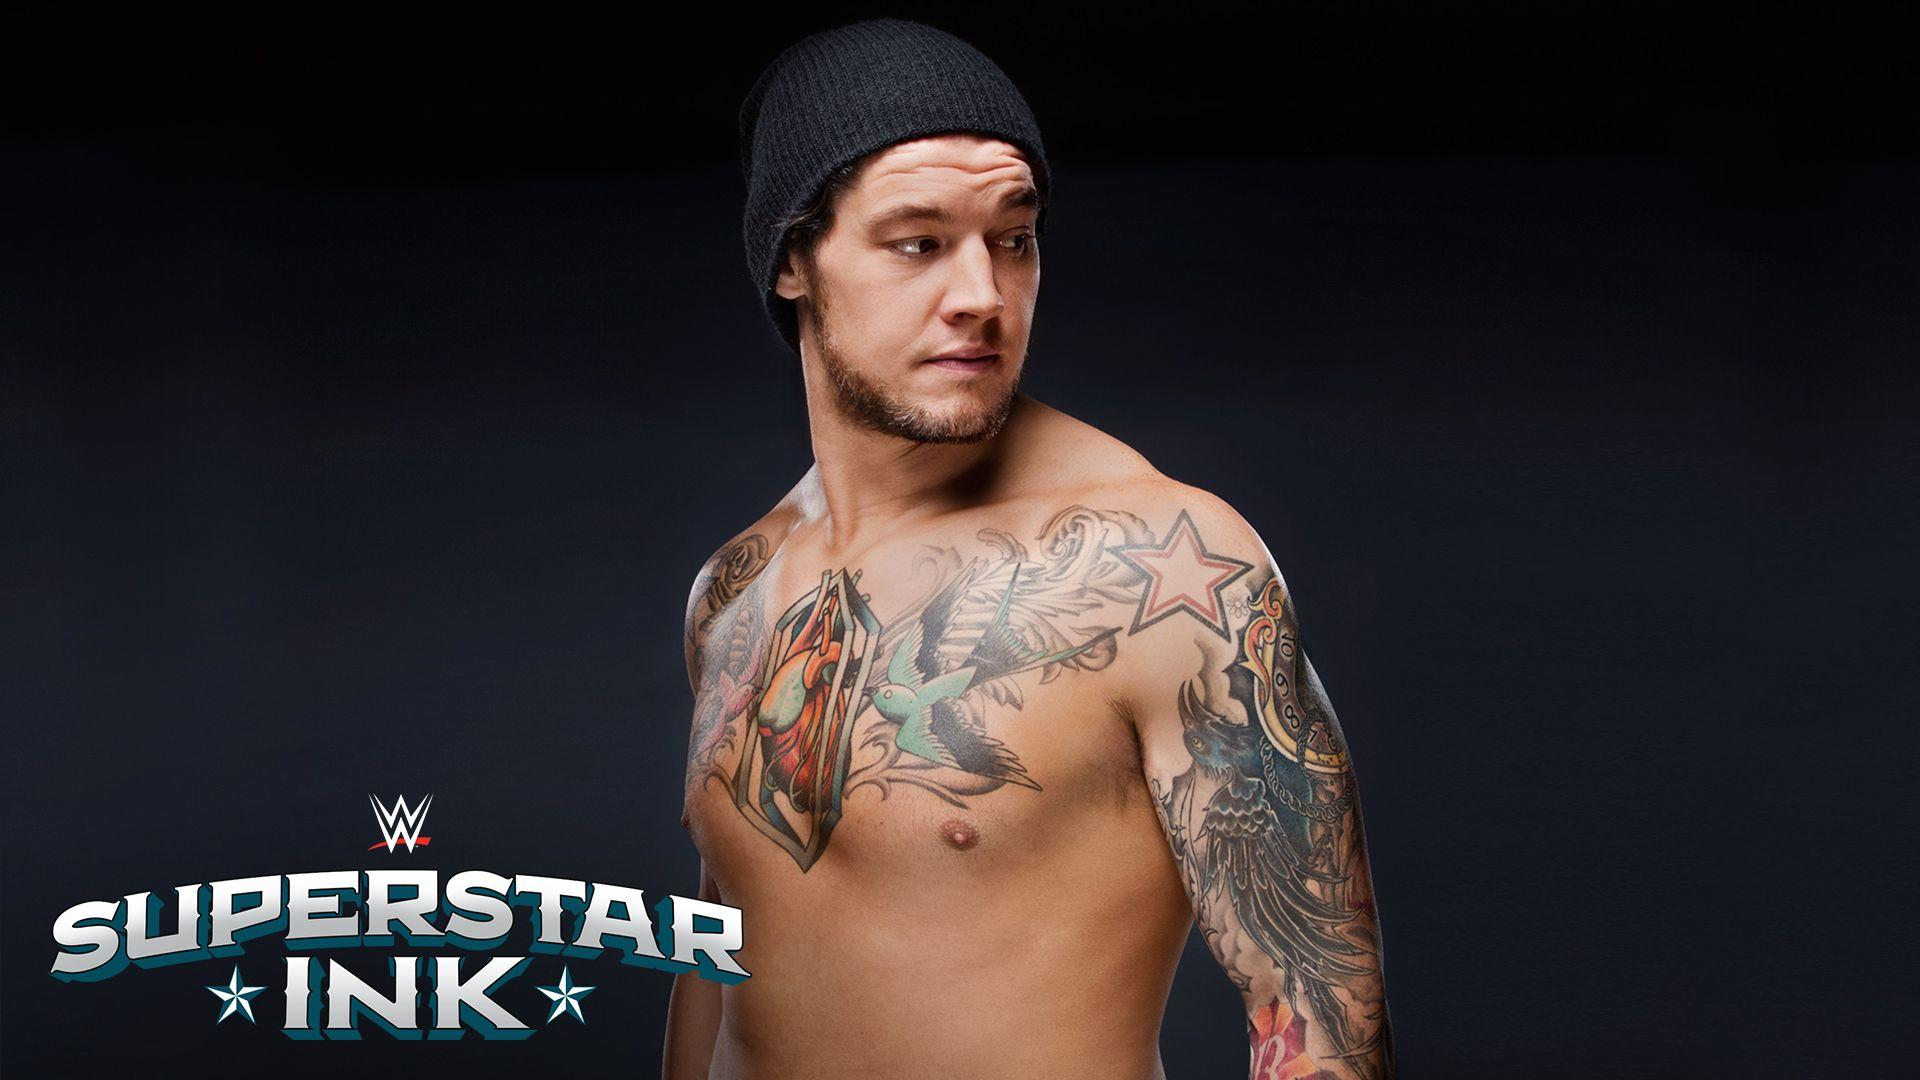 Baron Corbin tells the story behind his most personal tattoo